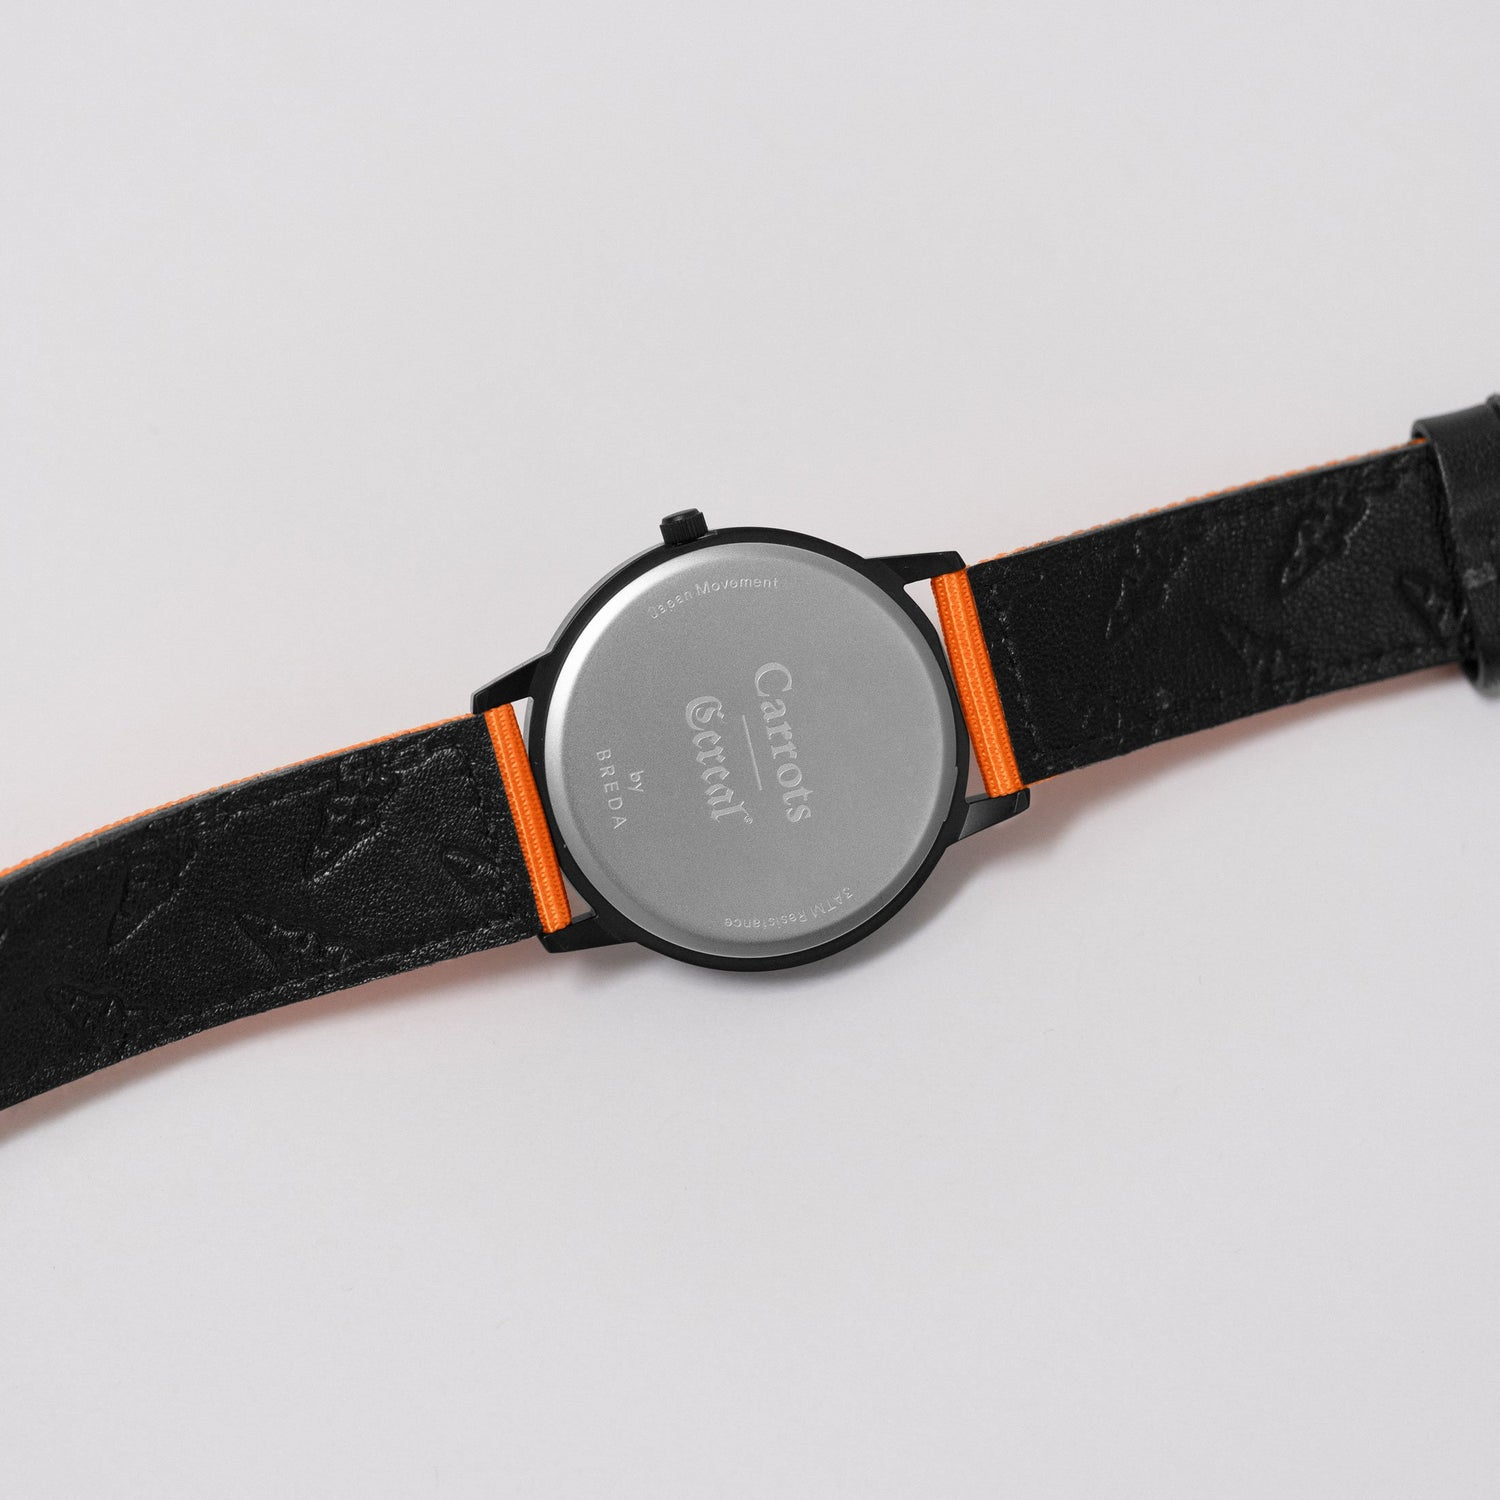 breda-cereal-carrots-valor-1707ct-black-orange-watch-studio-1